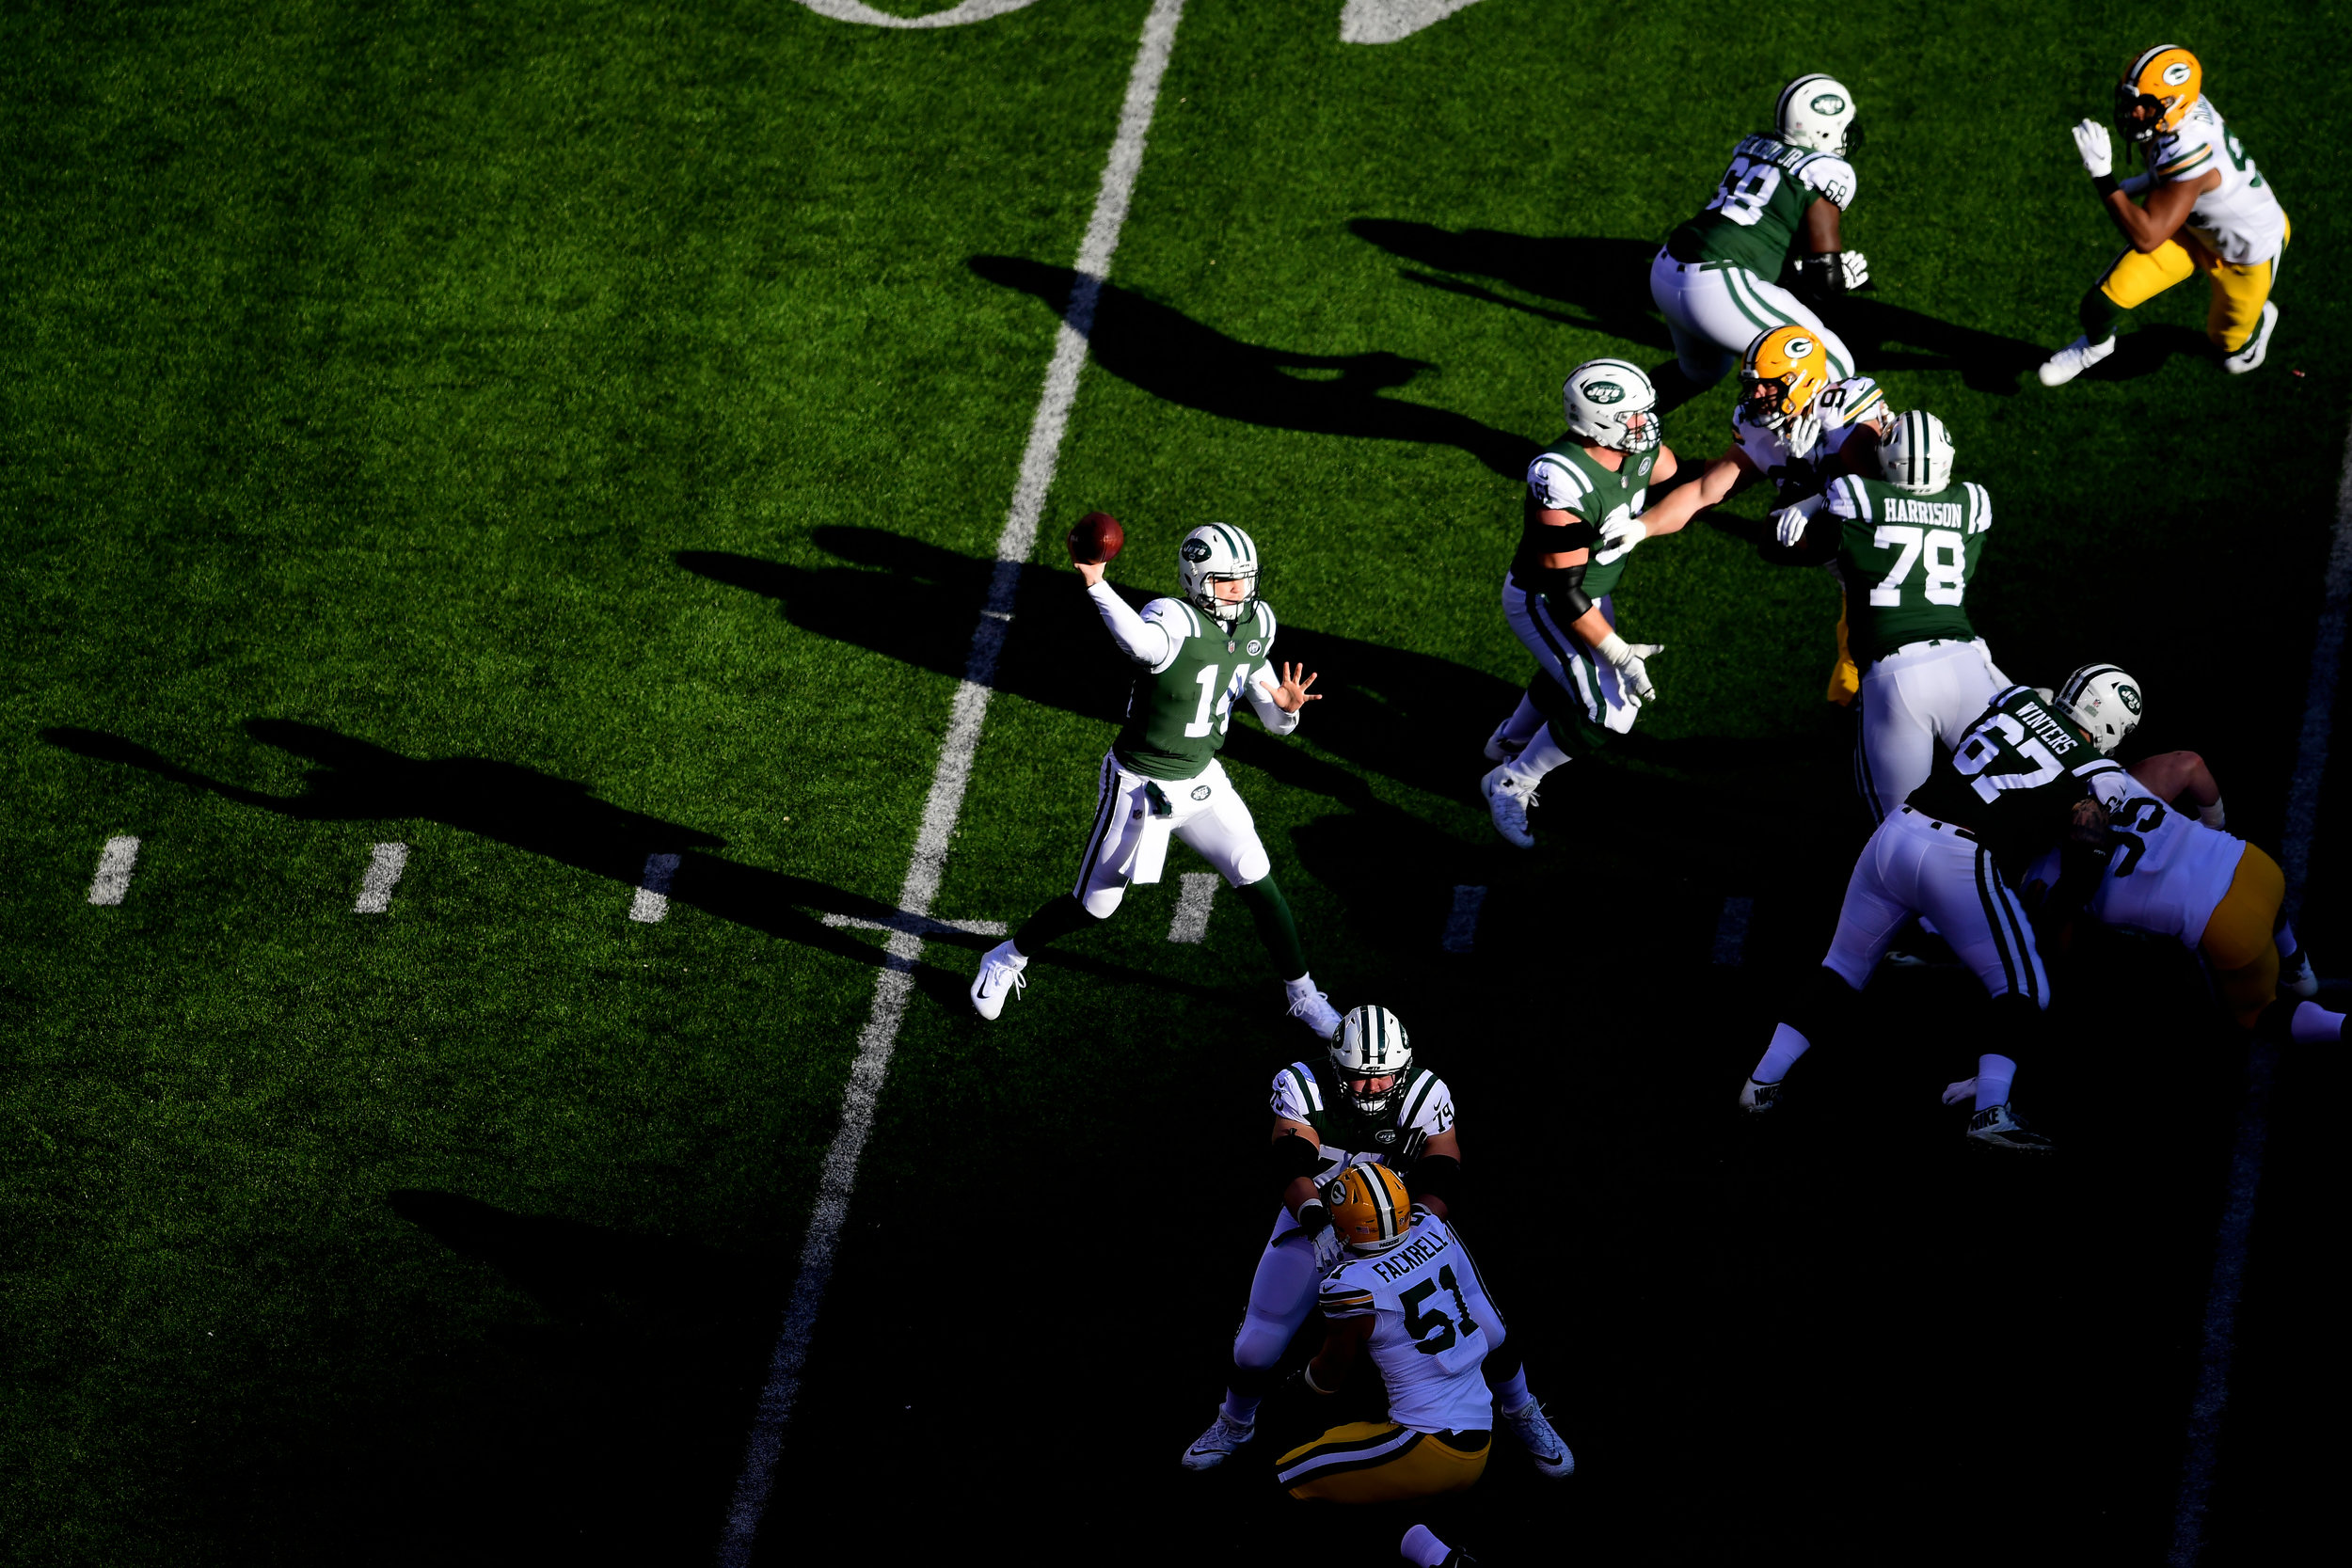 Sam Darnold #14 of the New York Jets passes against the Green Bay Packers during the first quarter at MetLife Stadium on December 23, 2018 in East Rutherford, New Jersey.